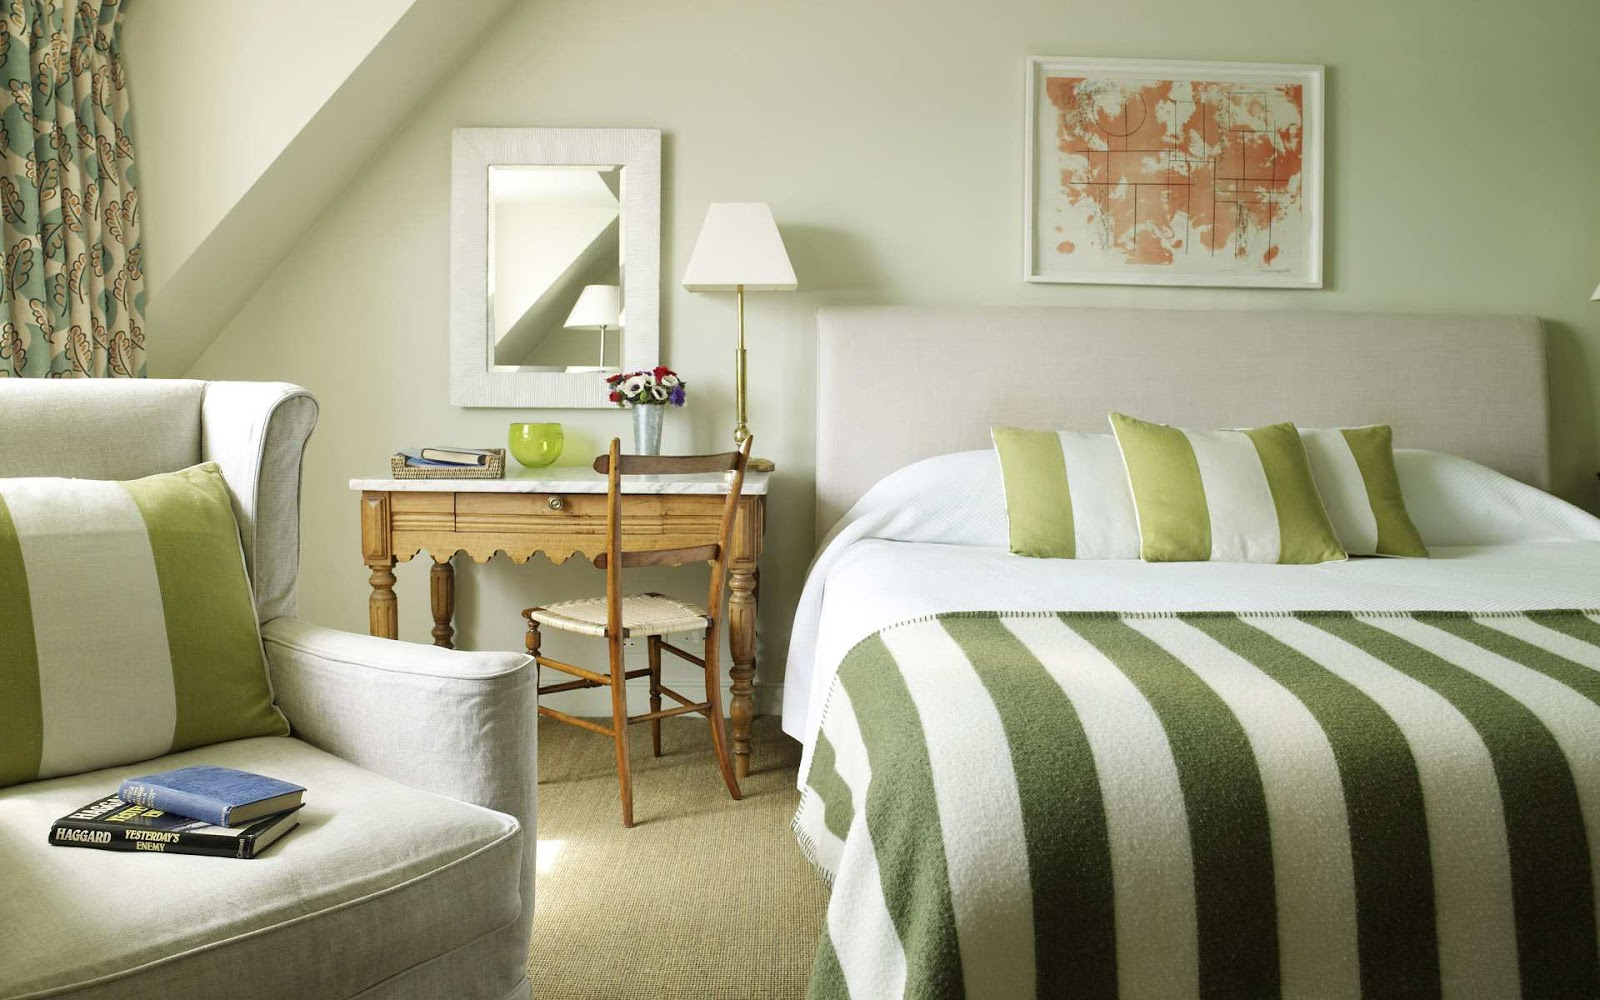 Marta decoycina color verde apuesta por el - Bedroom apartment interior design ideas ...